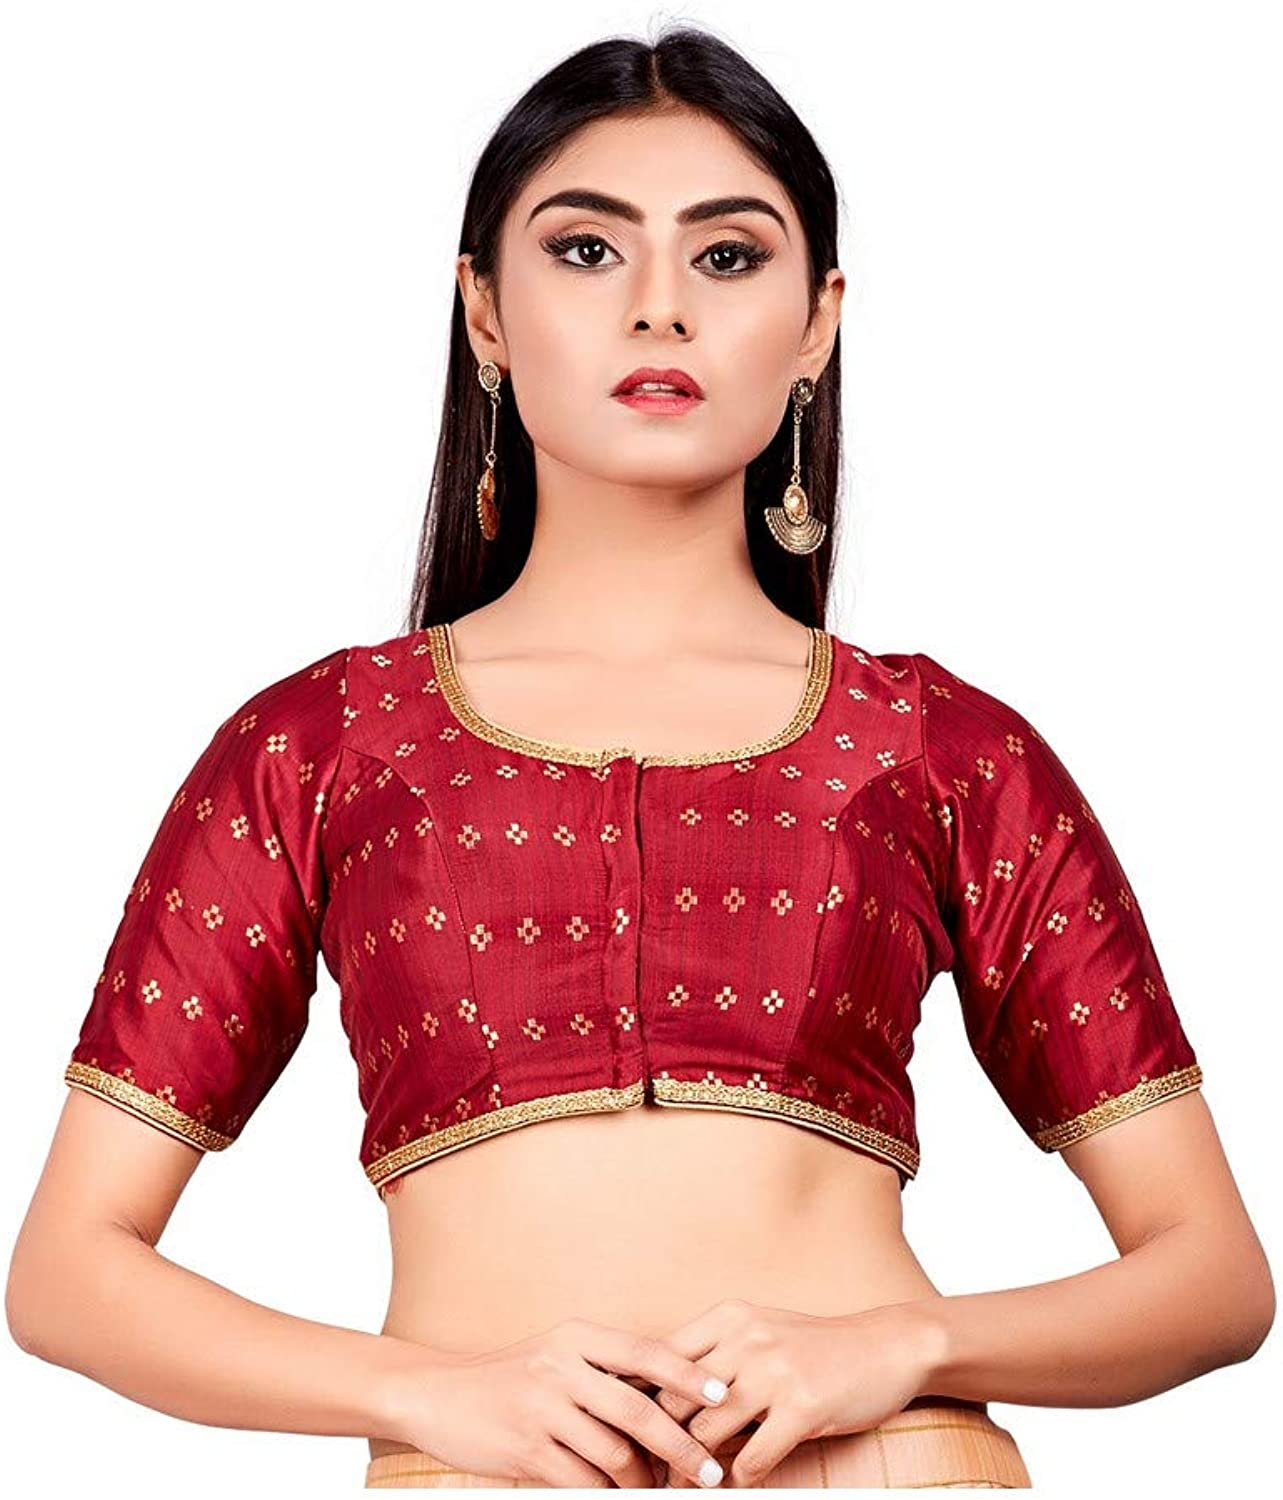 Designer Indian Maroon Dupion Silk Padded Front Open Hooks Elbow Sleeves Saree Blouse (Co722)